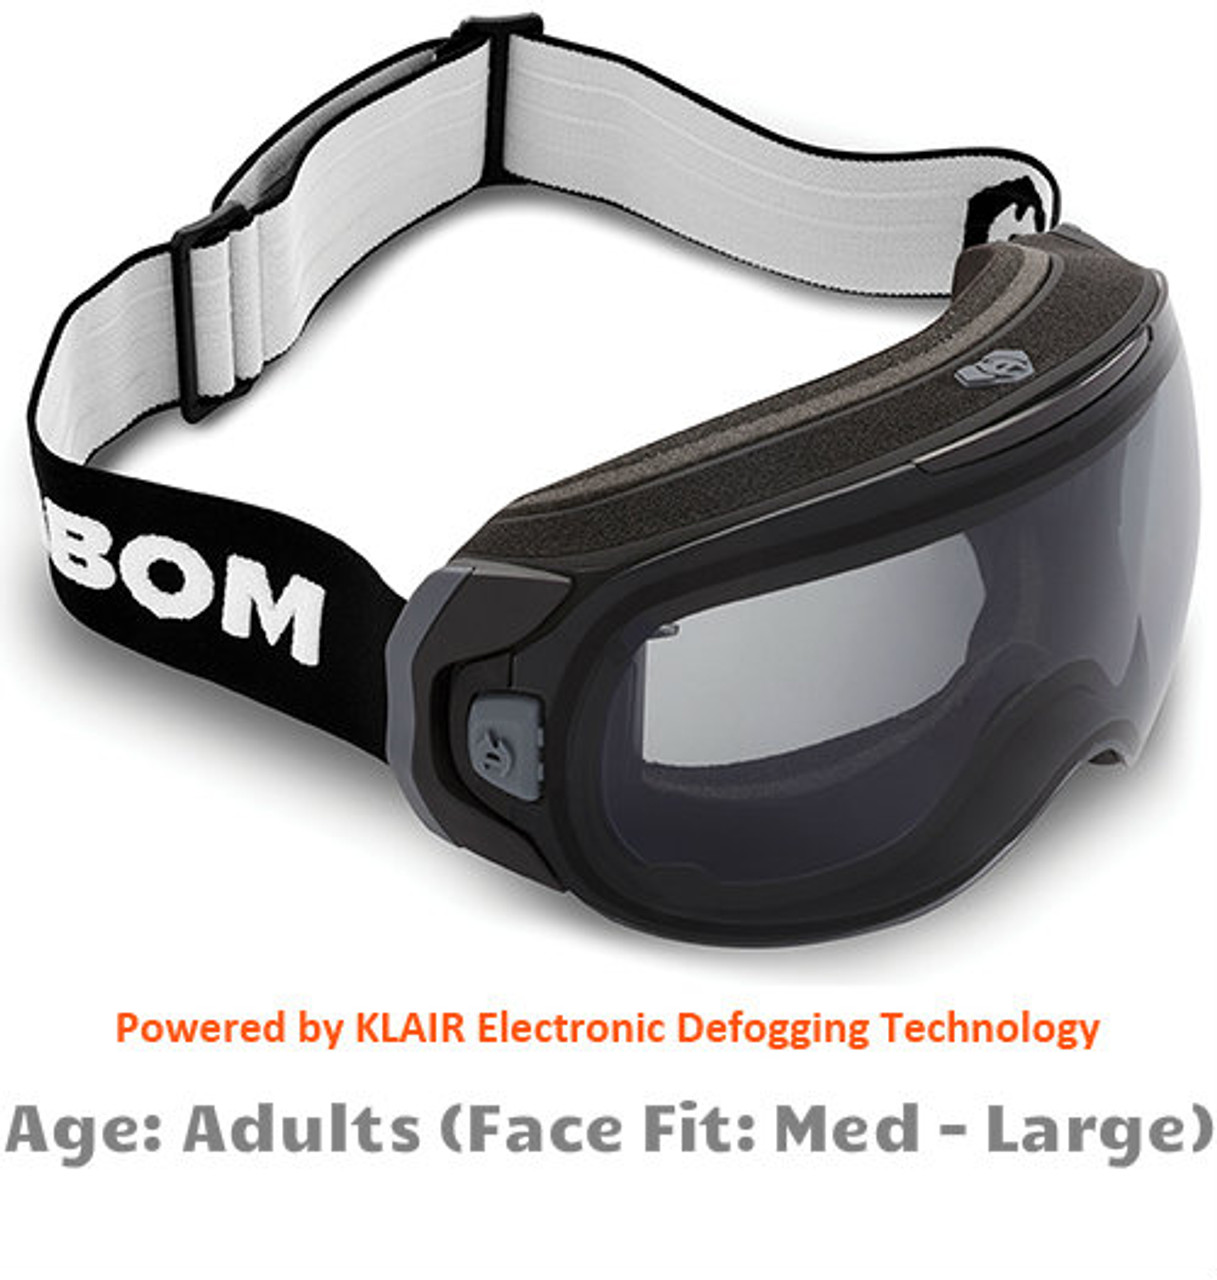 9fdfb81de3e Abom One Xray Grey Snow Goggles - Adult Sized Medium to Large Face Fit